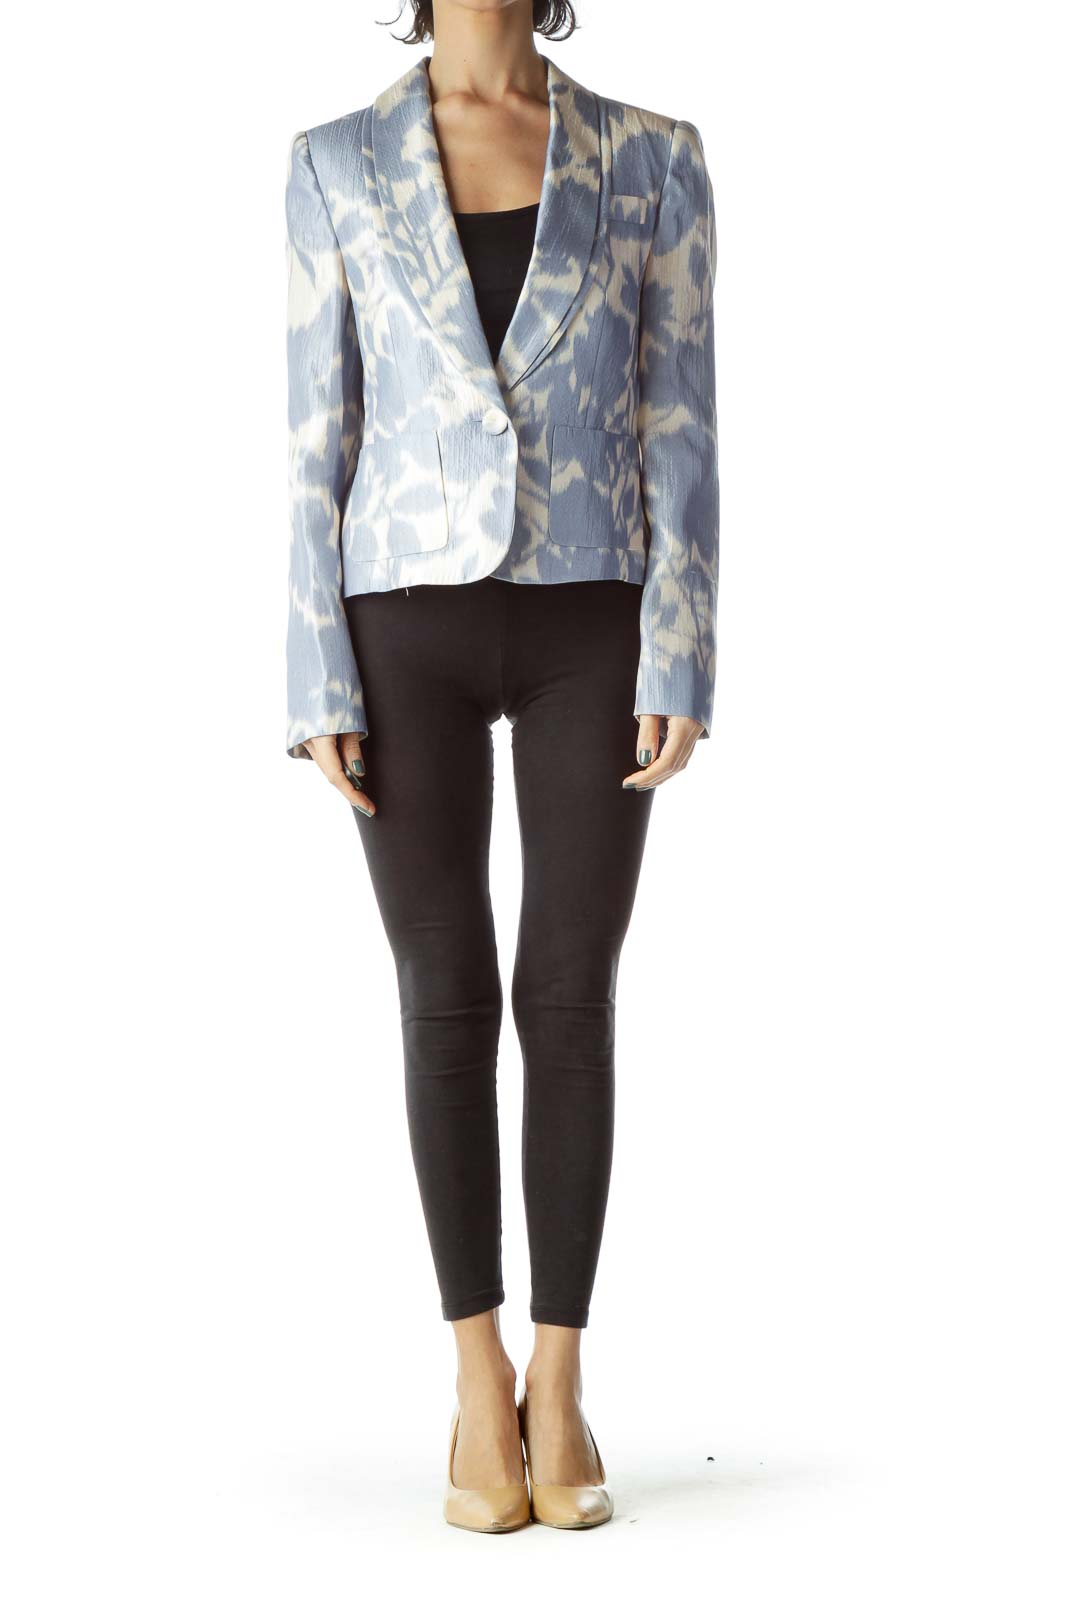 Blue Cream Tie-Die Silk Blazer